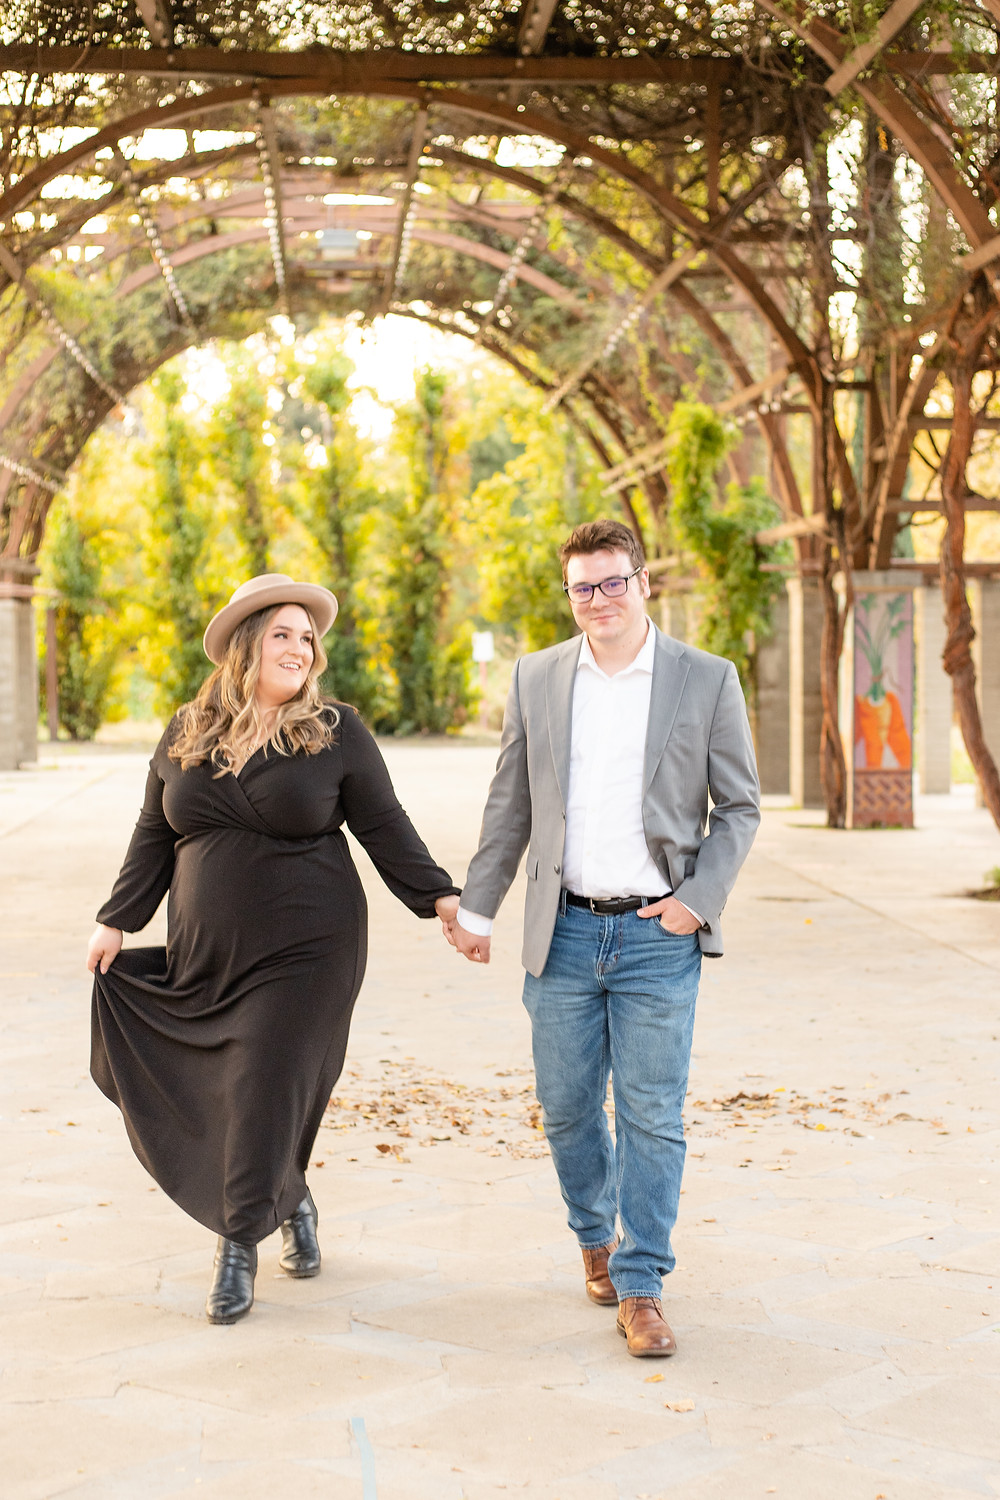 A couples session in Fresno, CA by Ashley Norton Photography.